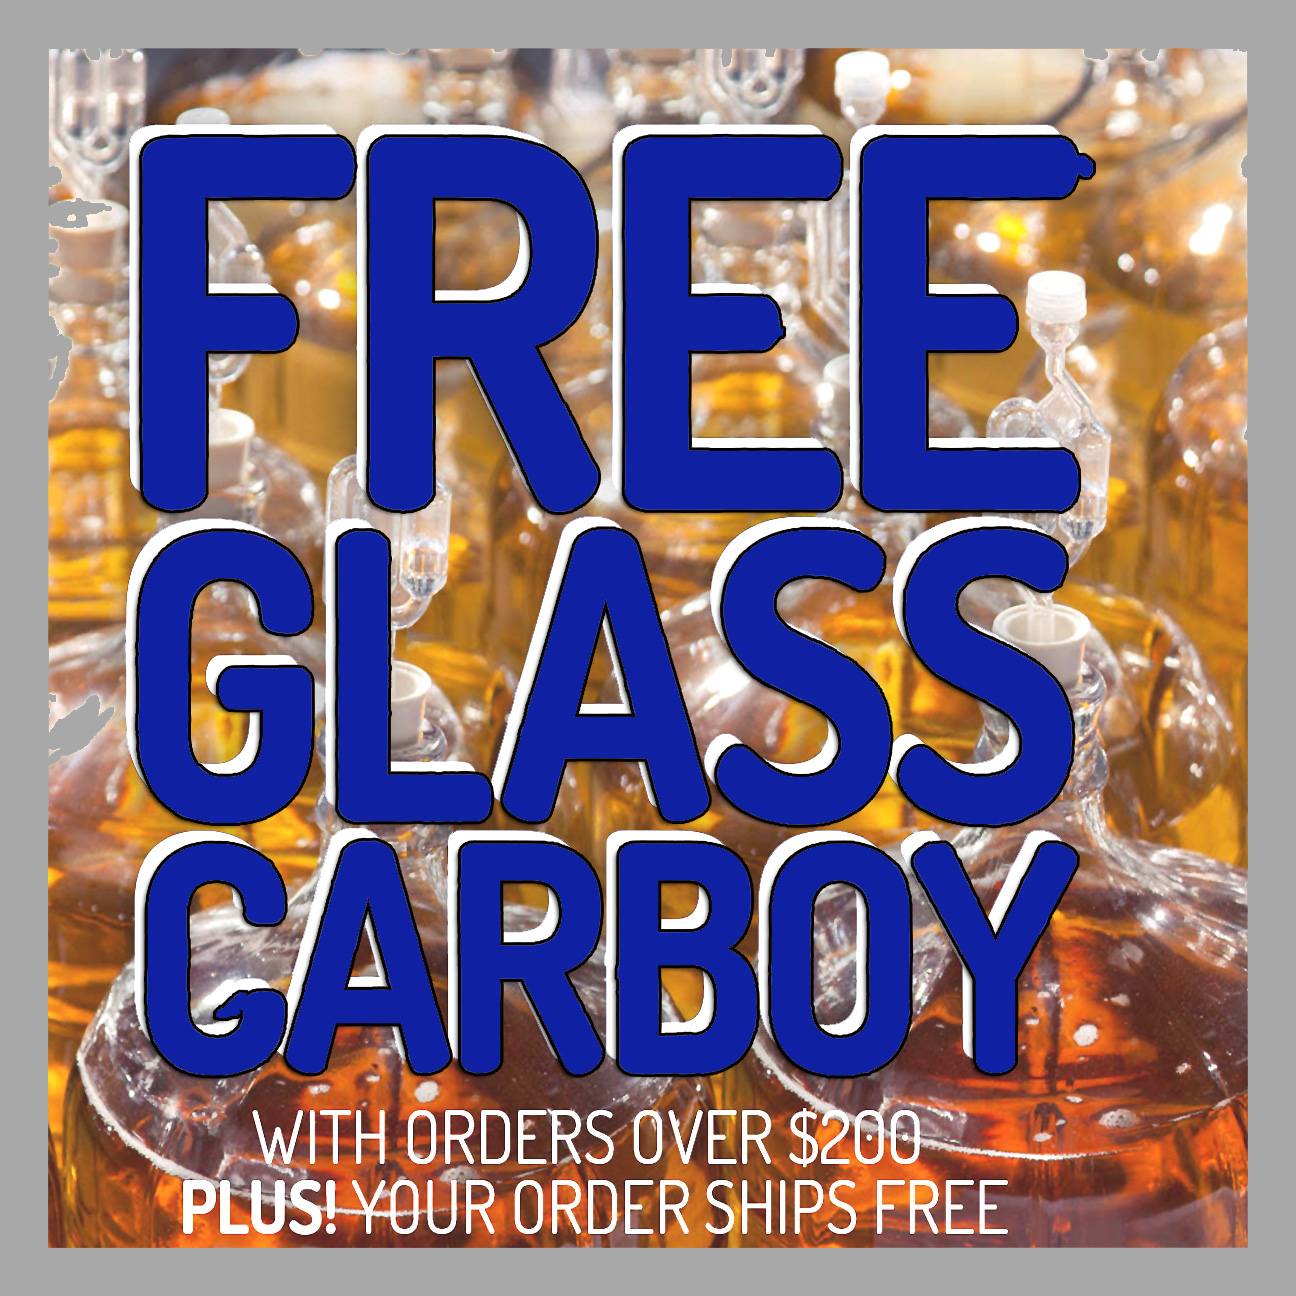 Midwest Supplies Spend $200 at MidwestSupplies.com and get a Free Carboy with this Midwest Supplies Promo Code Coupon Code